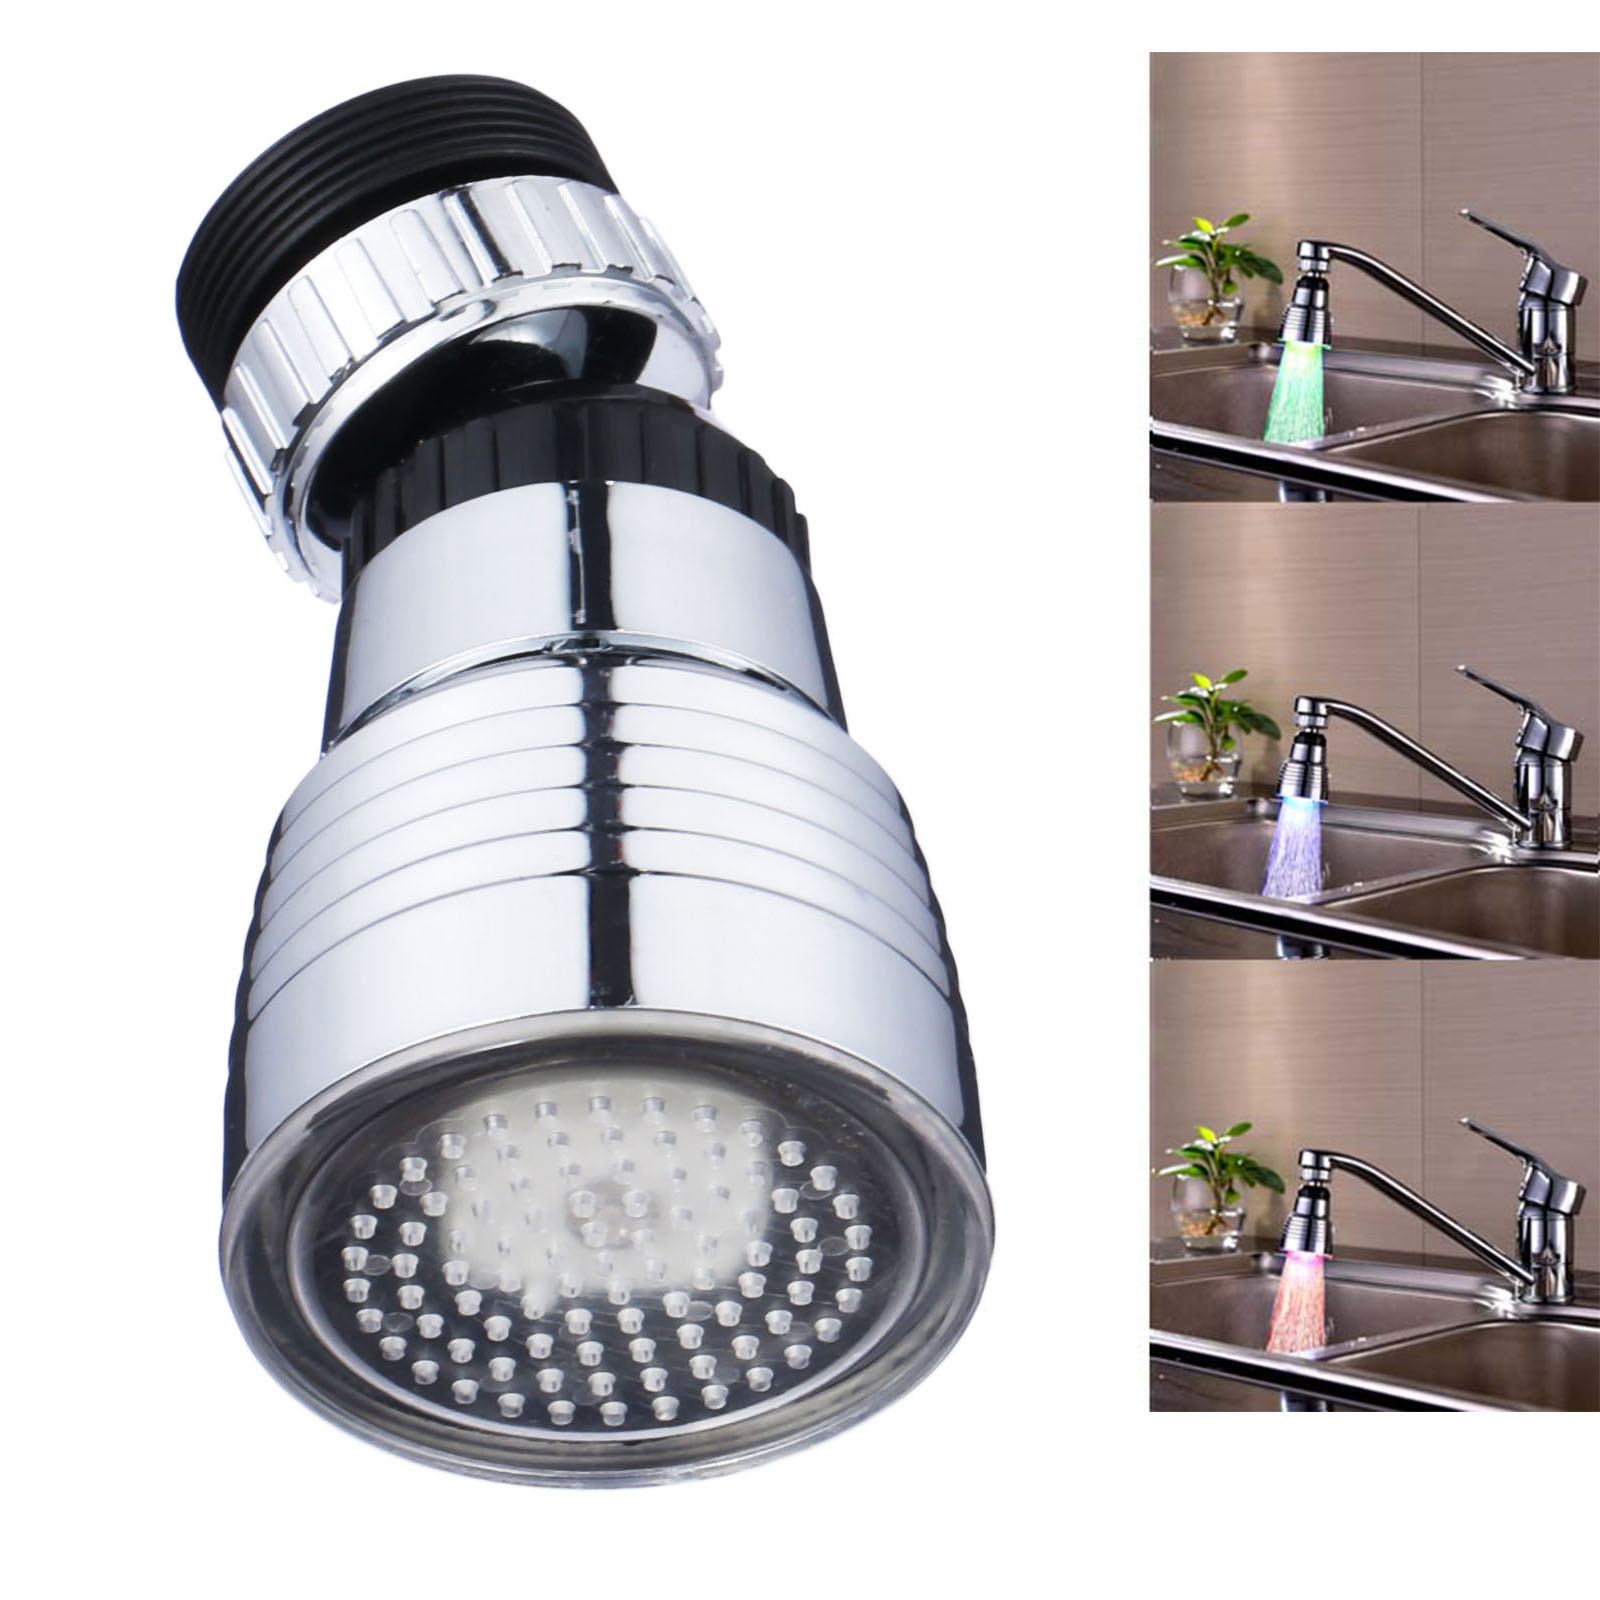 Other Home Plumbing Fixtures Home Garden 1pc Led Kitchen 7 Colors Change Water Saving Faucet Aerator Led Water Tap Light Topografiapv Cl